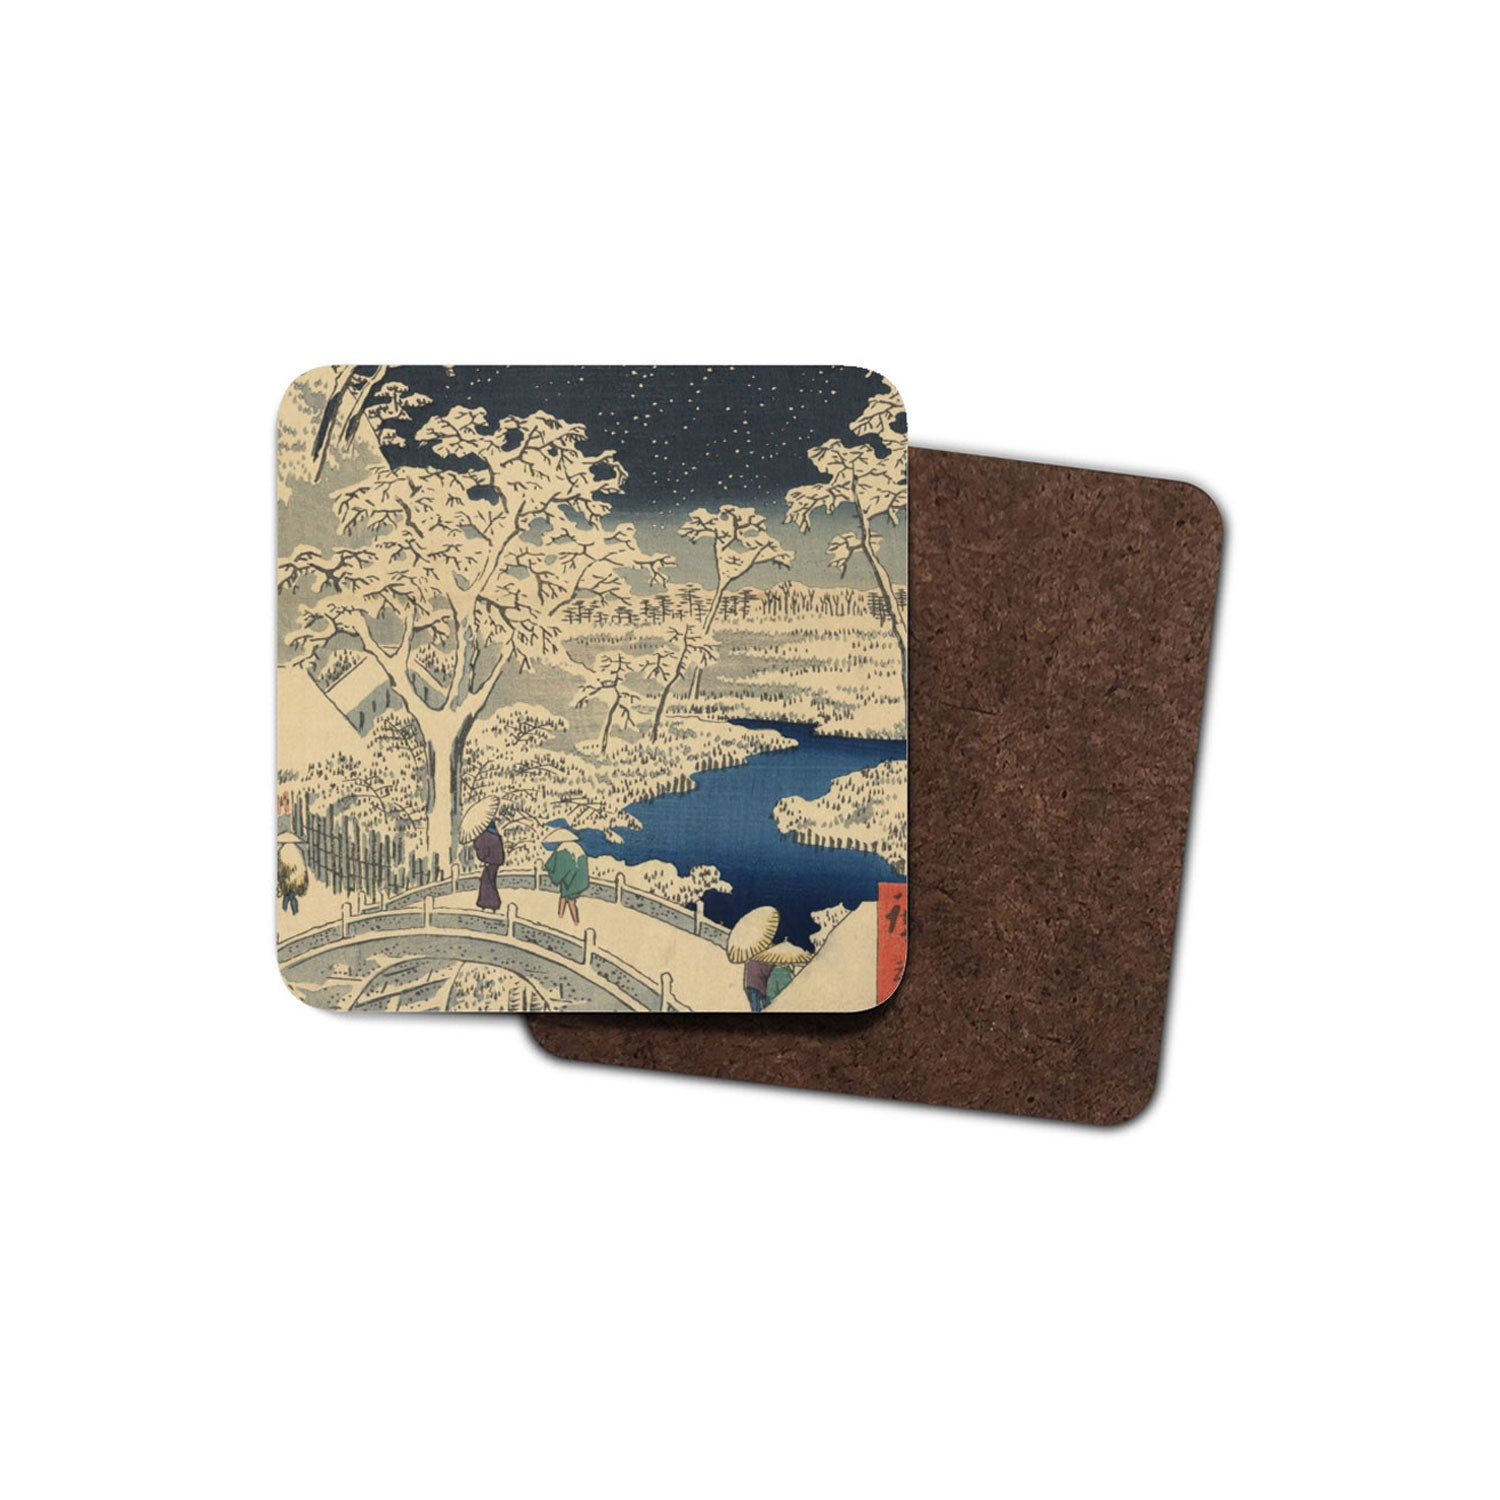 drinks coaster with japanese art on it: boat on the waves